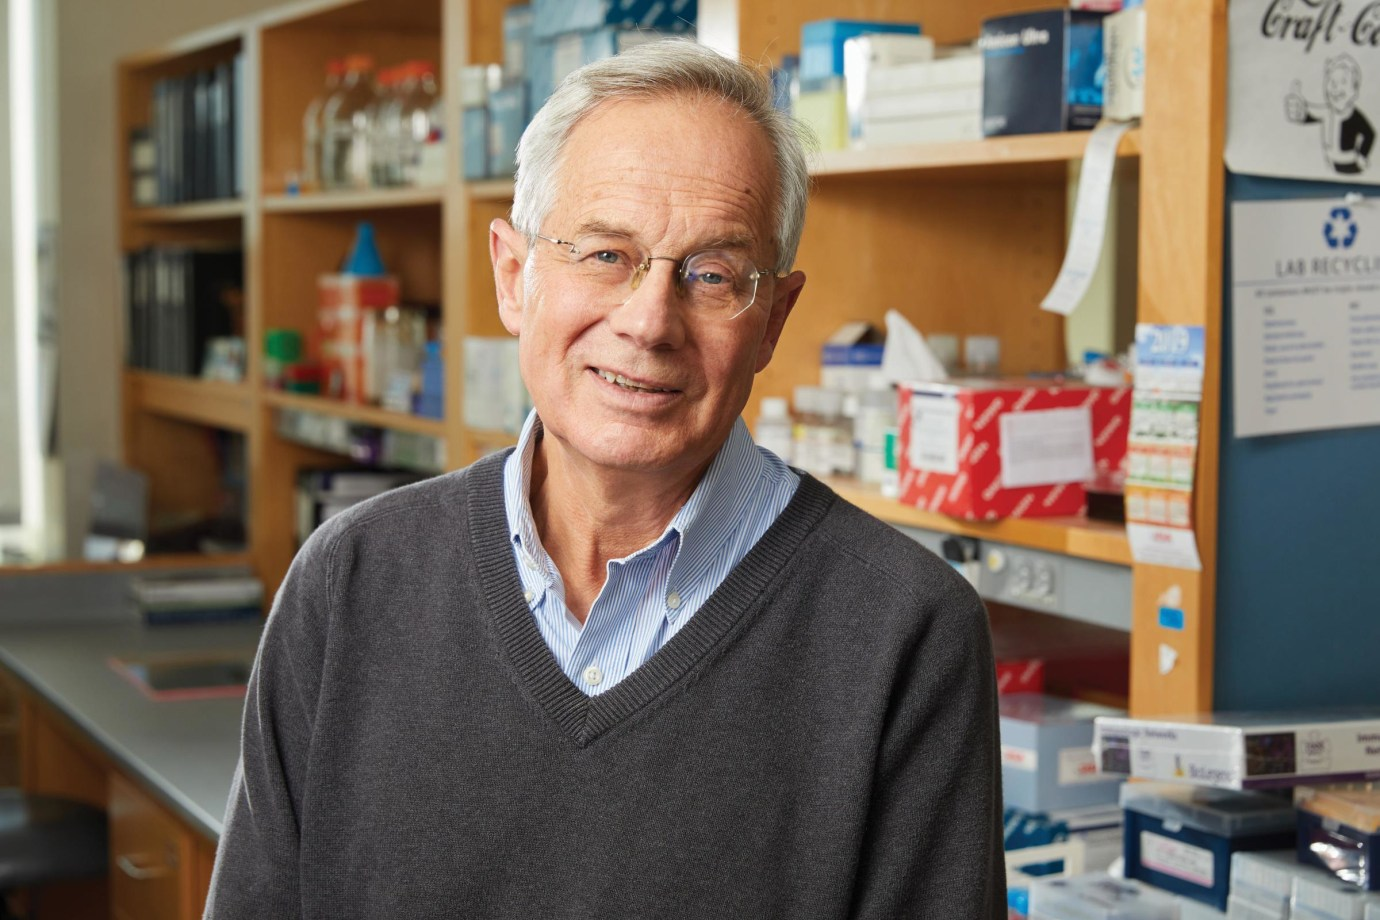 Joseph Craft is the inaugural director of the Colton Center for Autoimmunity at Yale